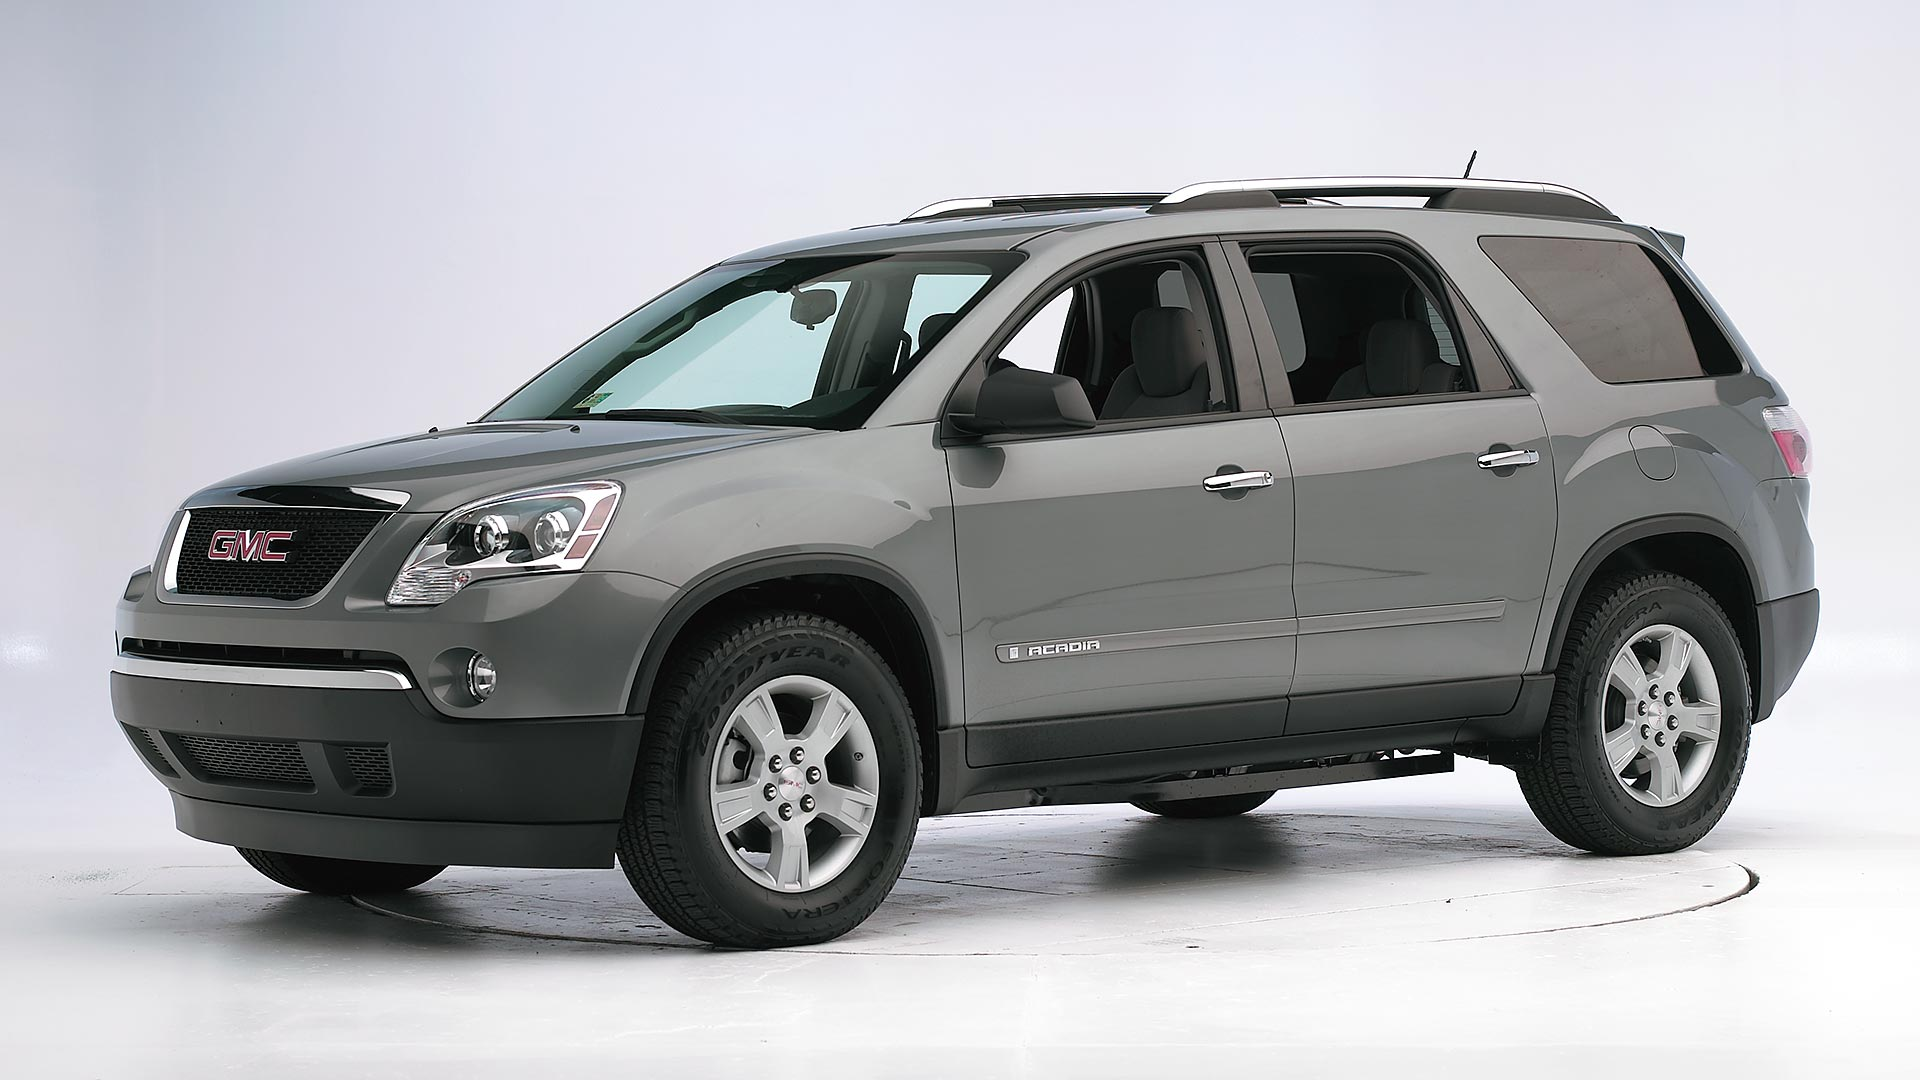 2009 GMC Acadia 4-door SUV